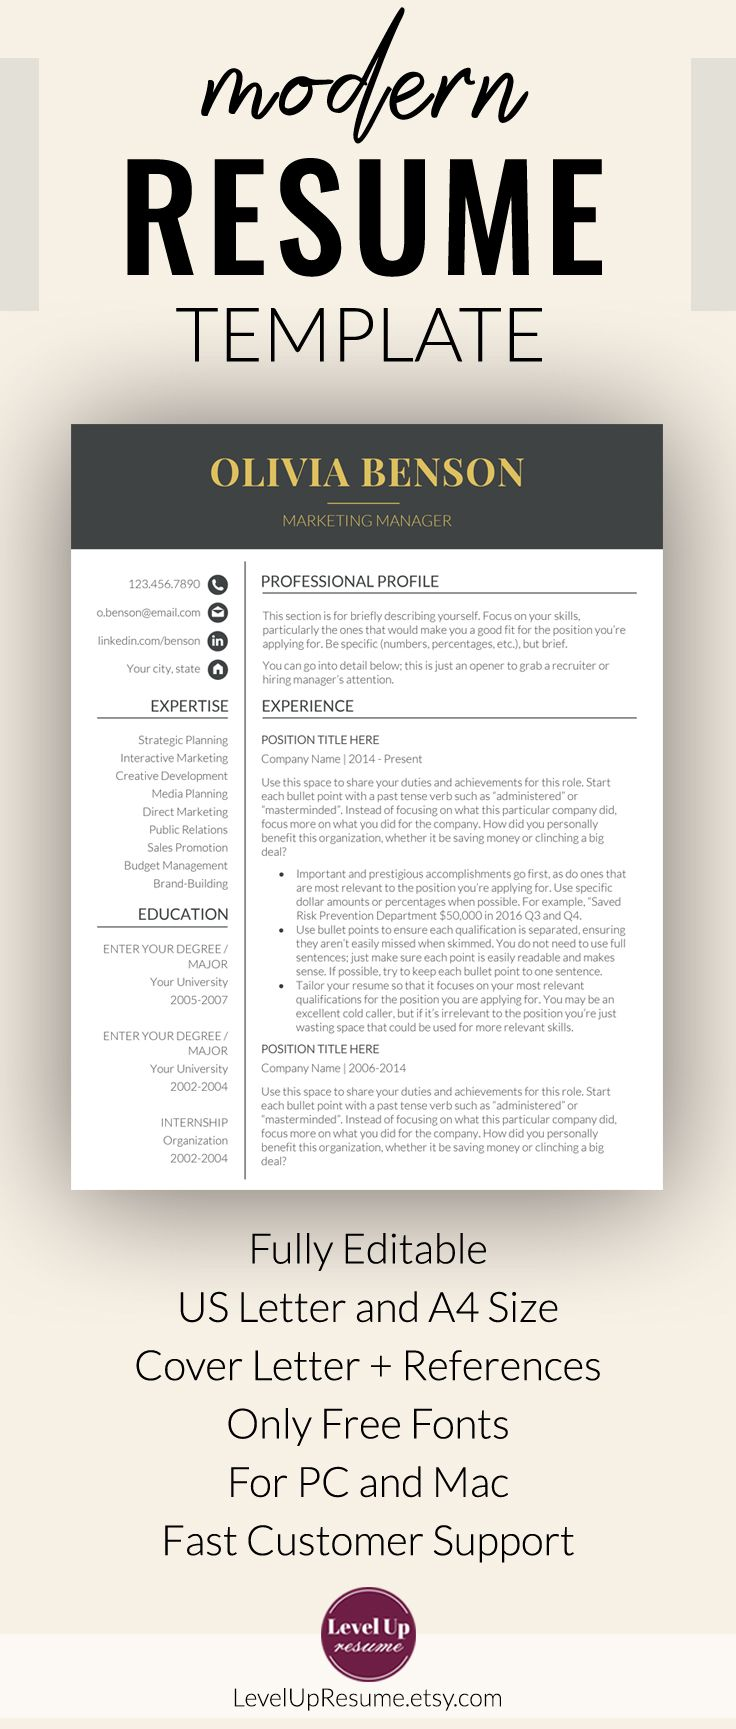 professional resume template for microsoft word olivia benson minimalist resume template cover